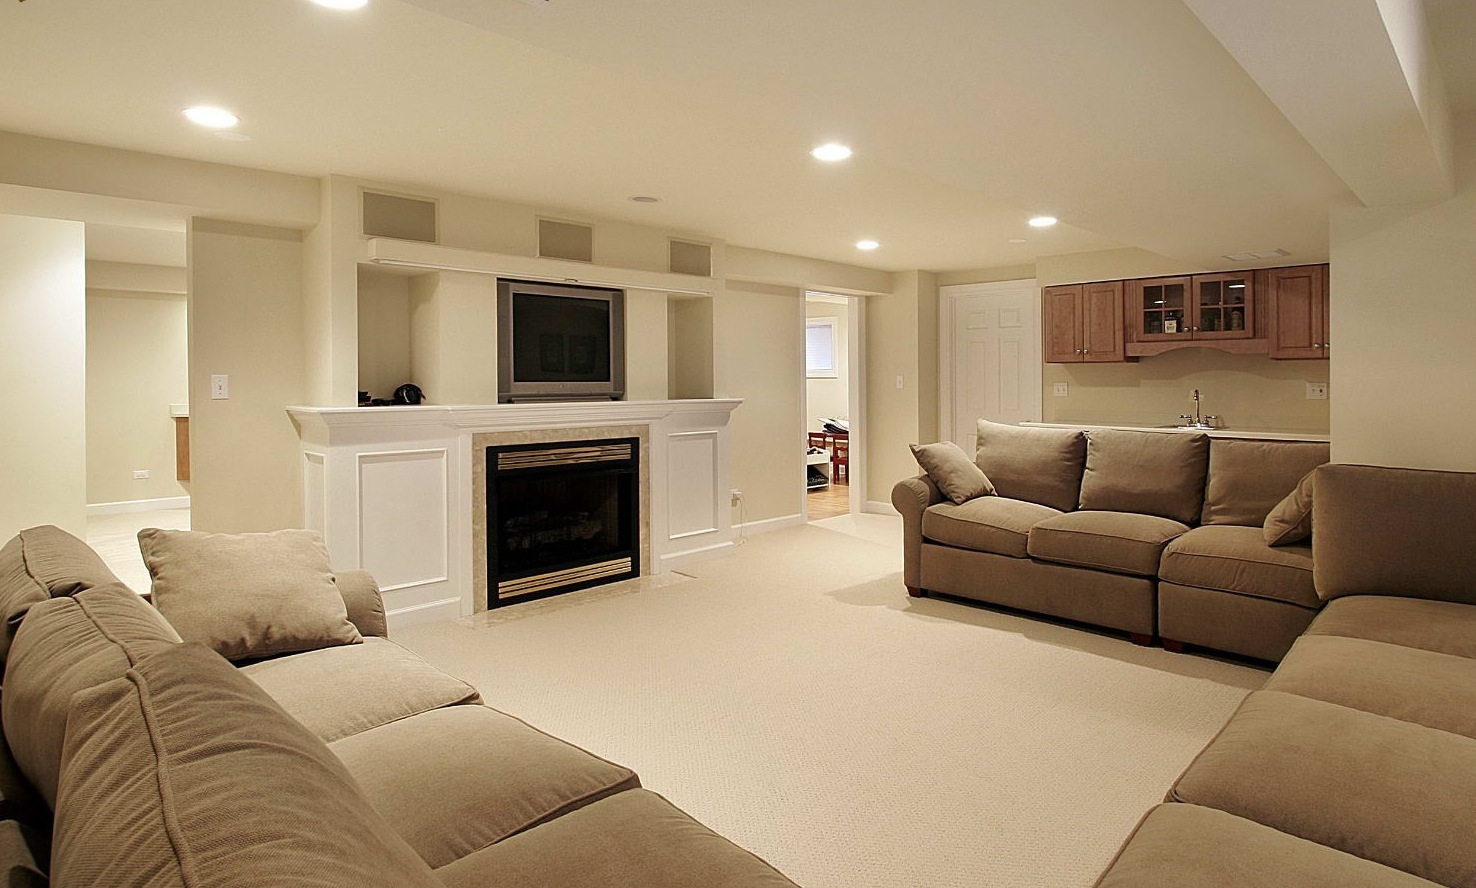 Remodeling Basement Ideas Unique 30 Basement Remodeling Ideas & Inspiration Review